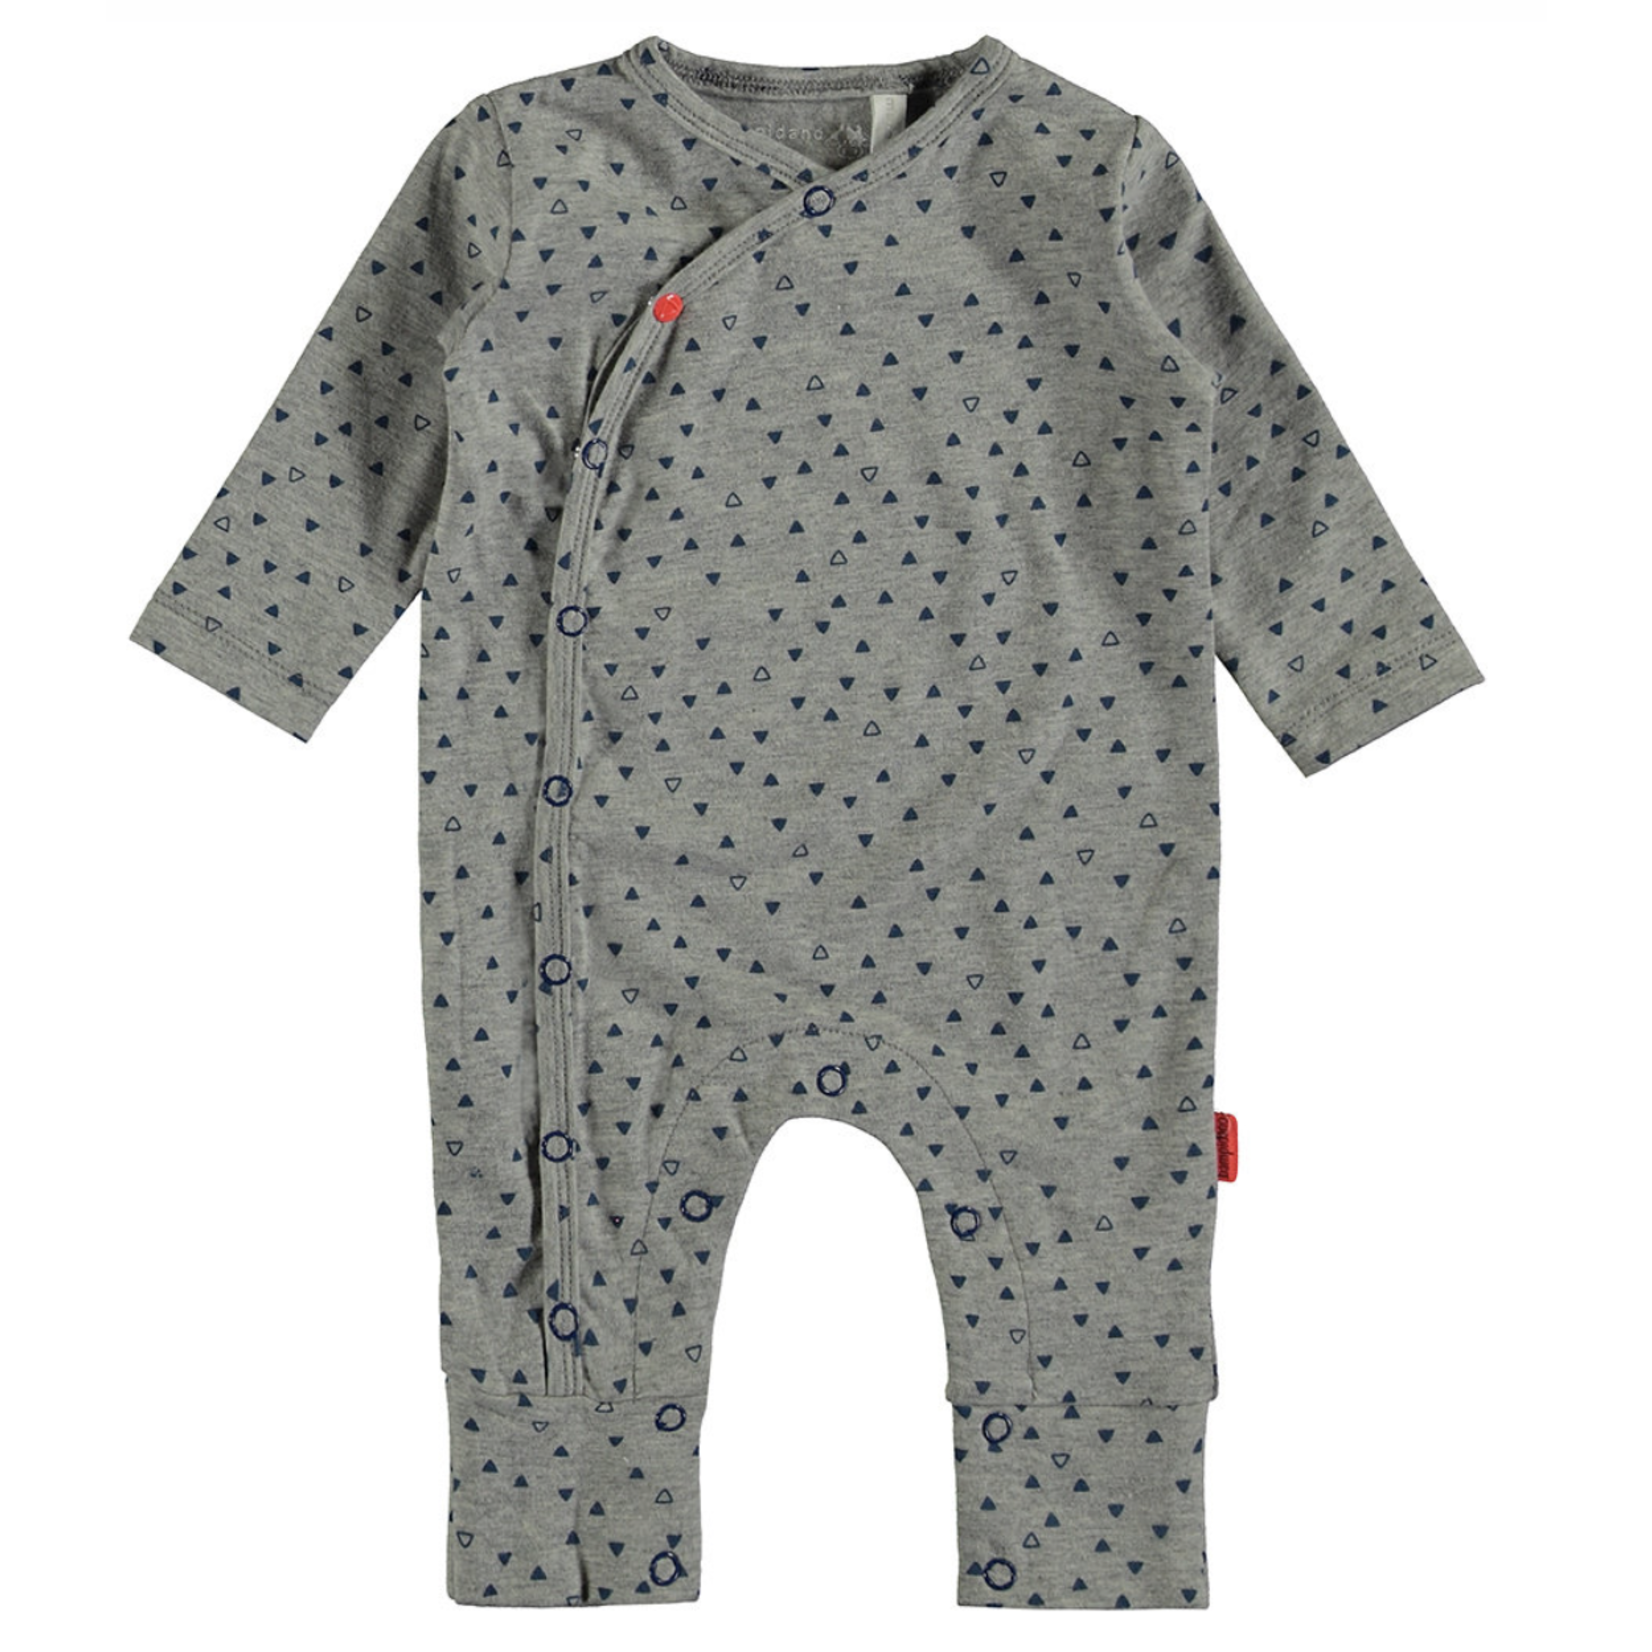 Bampidano Little Bampidano newborn overall Ezra AO with turnback feet TRIANGLE